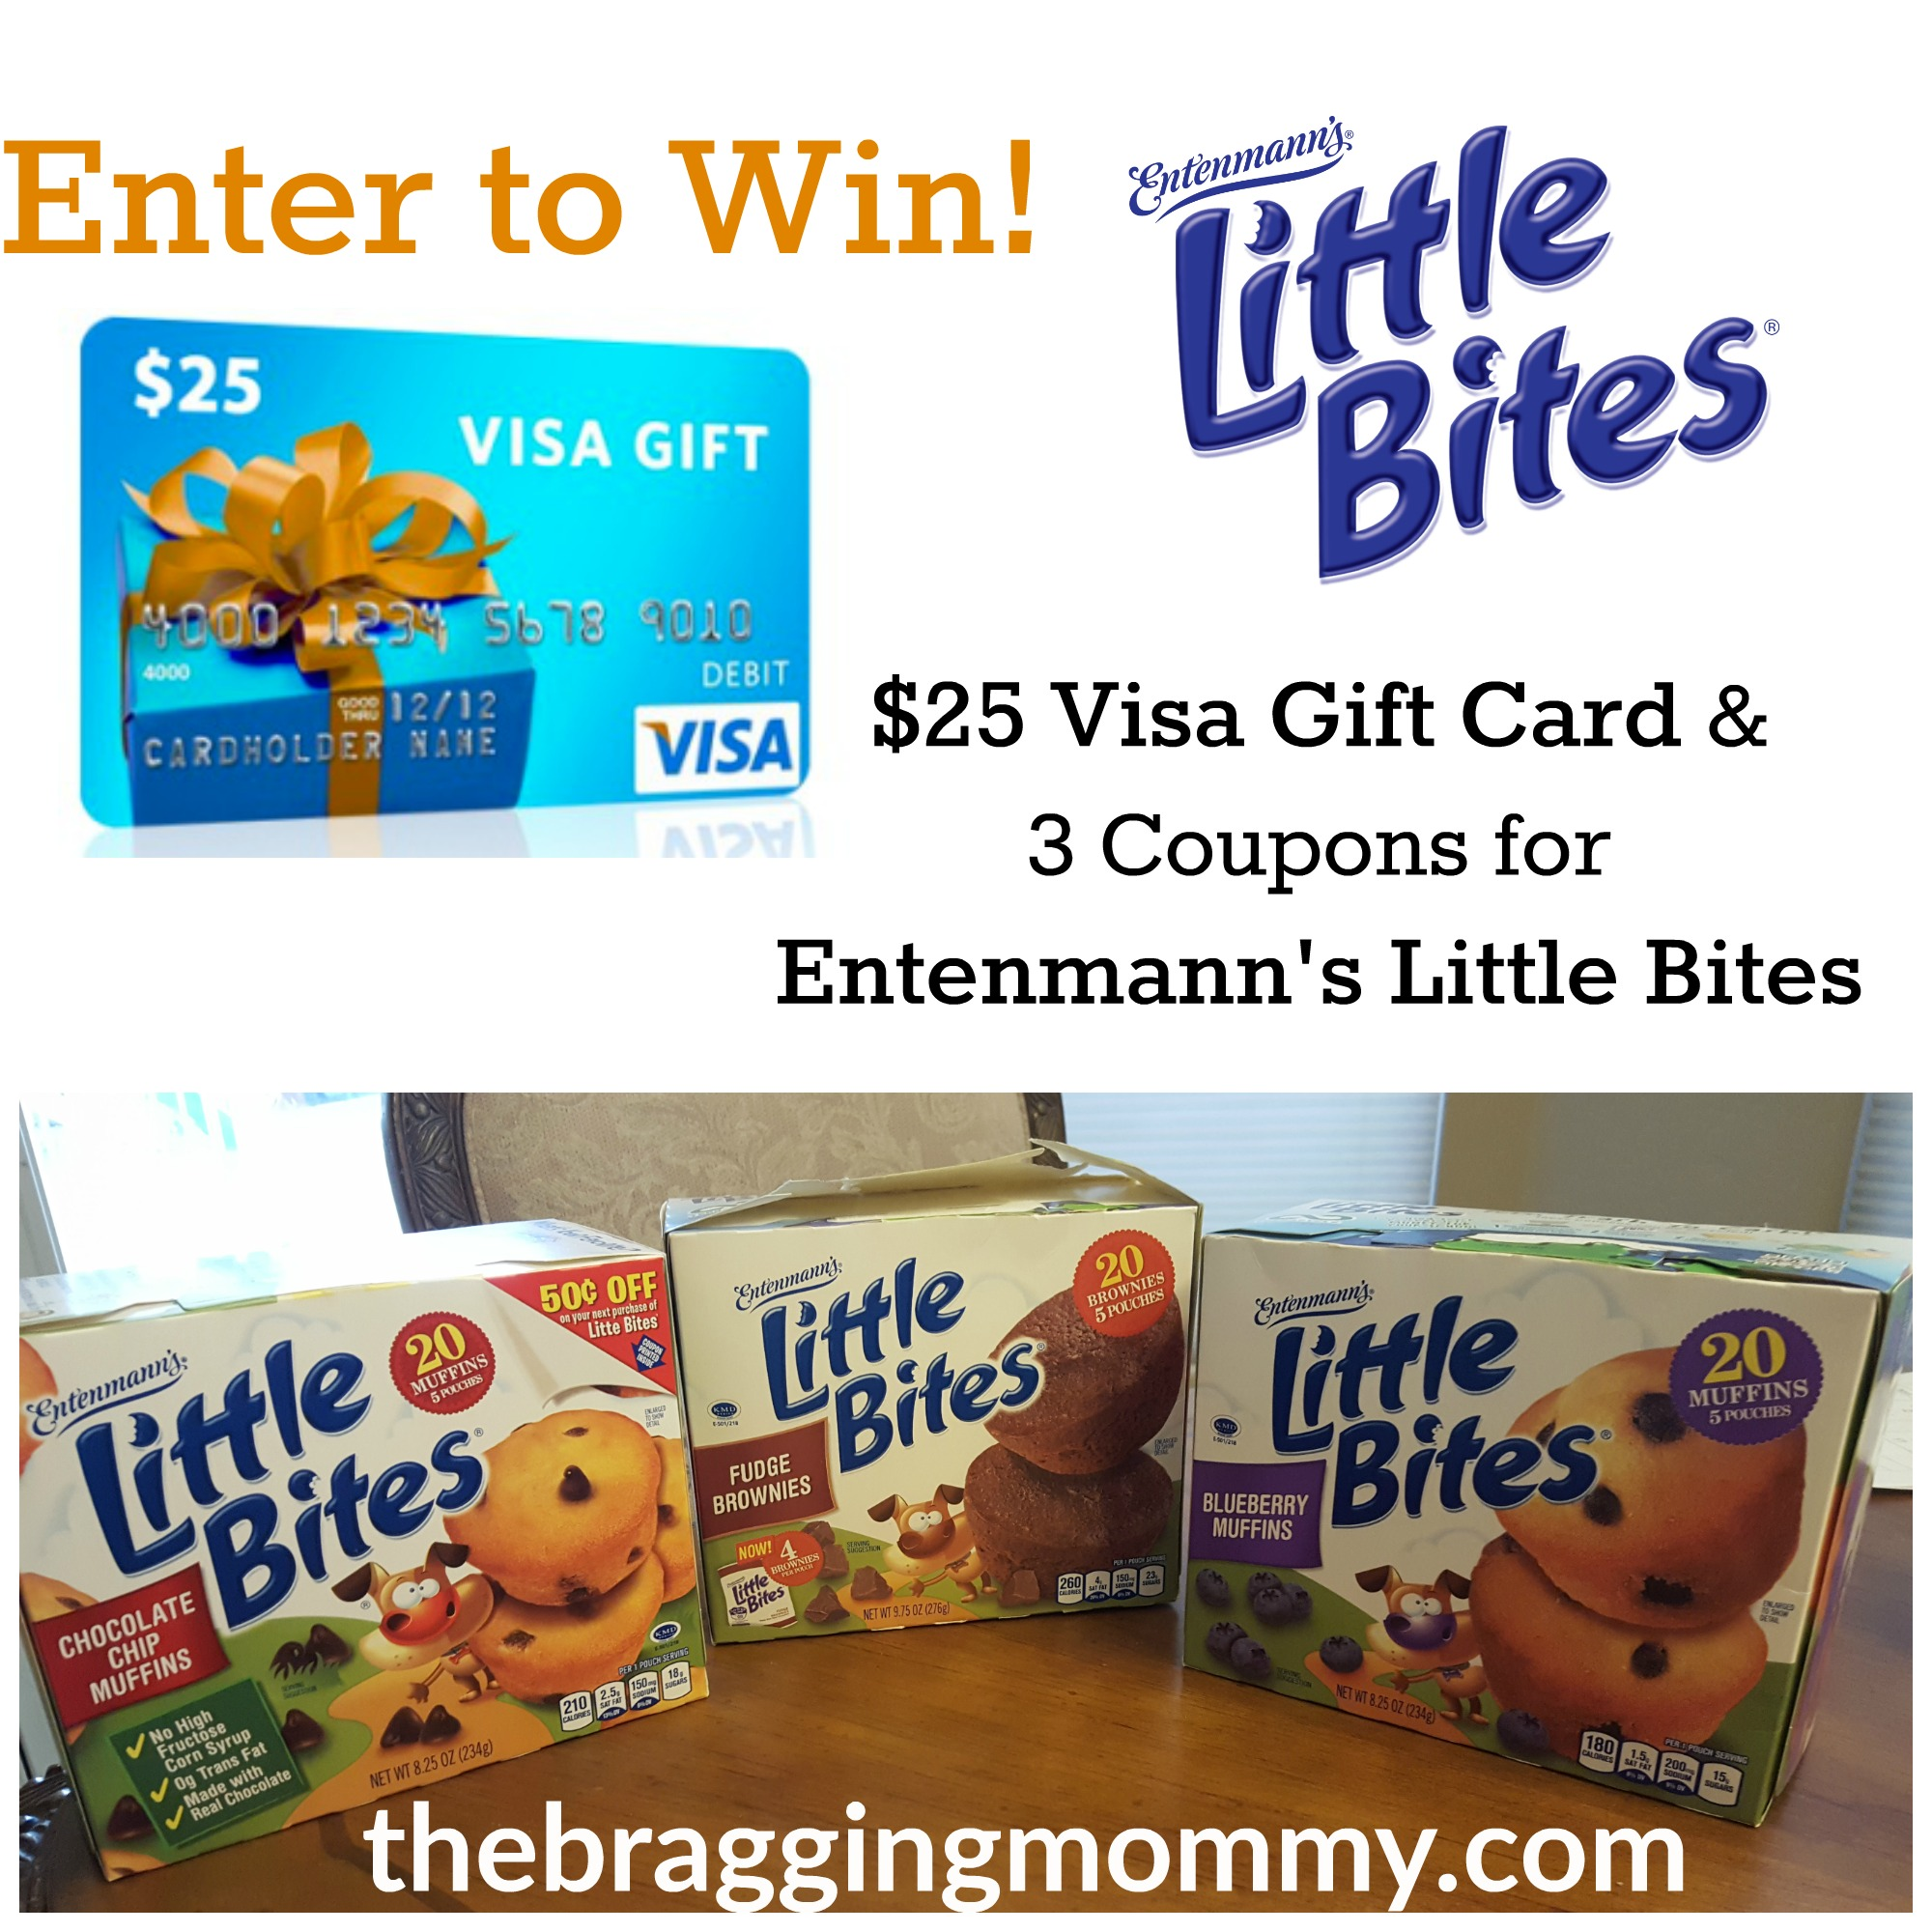 Little Bites Coupons by Email – Expires 10/6/ – Register and save by email off your next purchase of these products that contain as little as calories! Official Entenmanns Facebook Coupon – Expires 10/8/ – Get alerted to whenever a new Little Bites offer is available by following their official facebook page. Just click like.